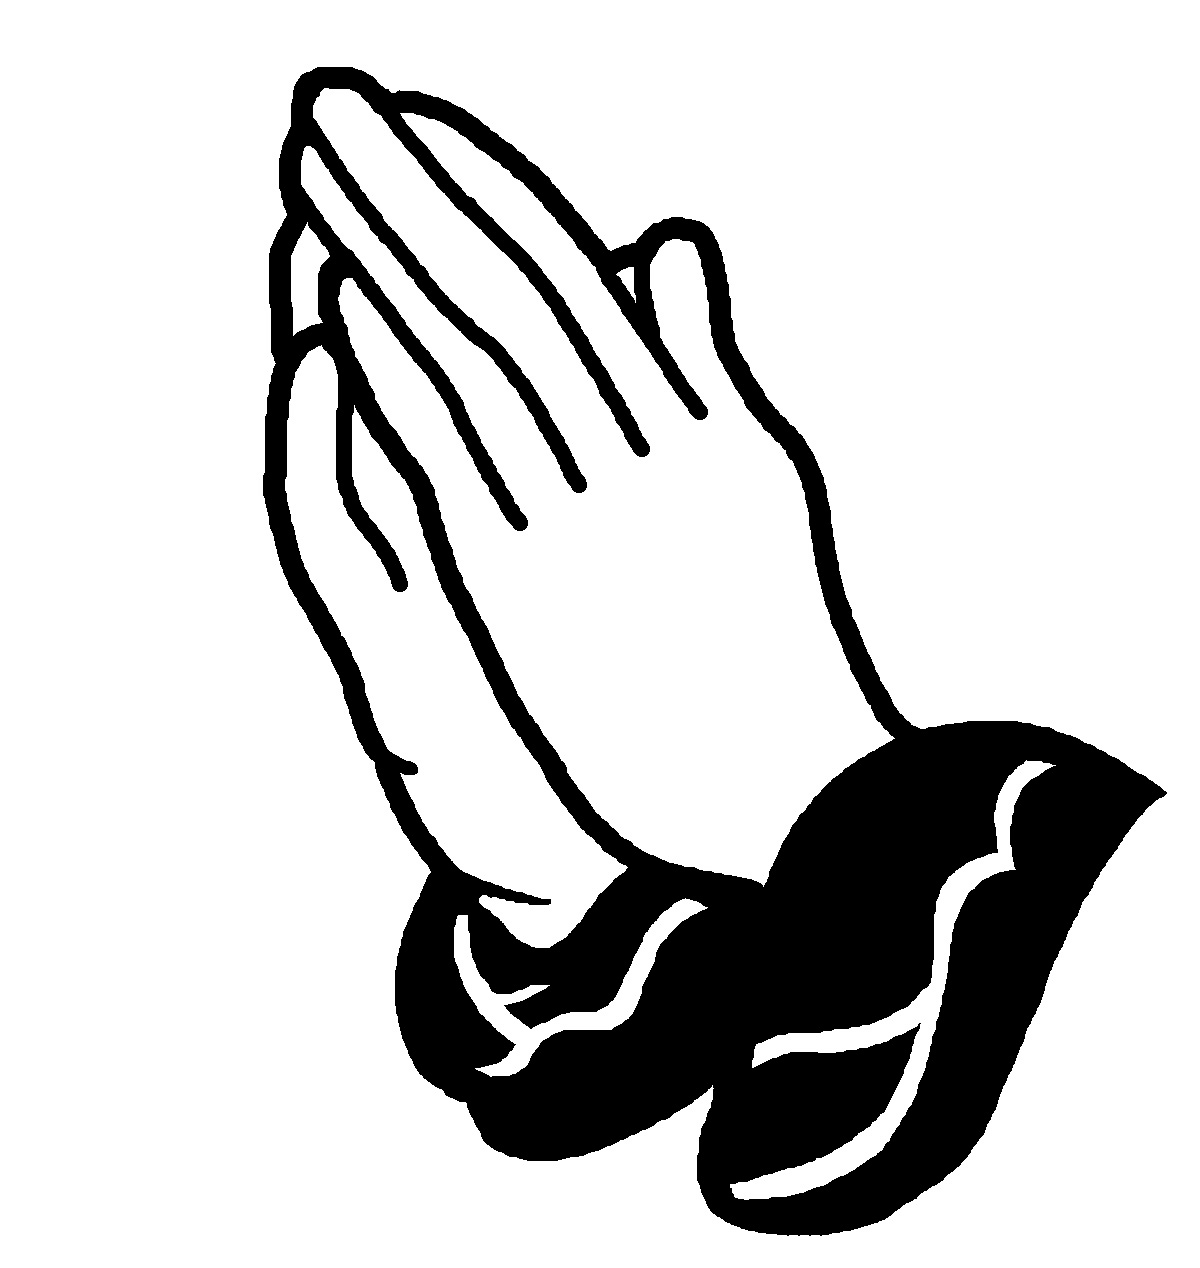 Free Hands Clasped In Prayer, Download Free Clip Art, Free.